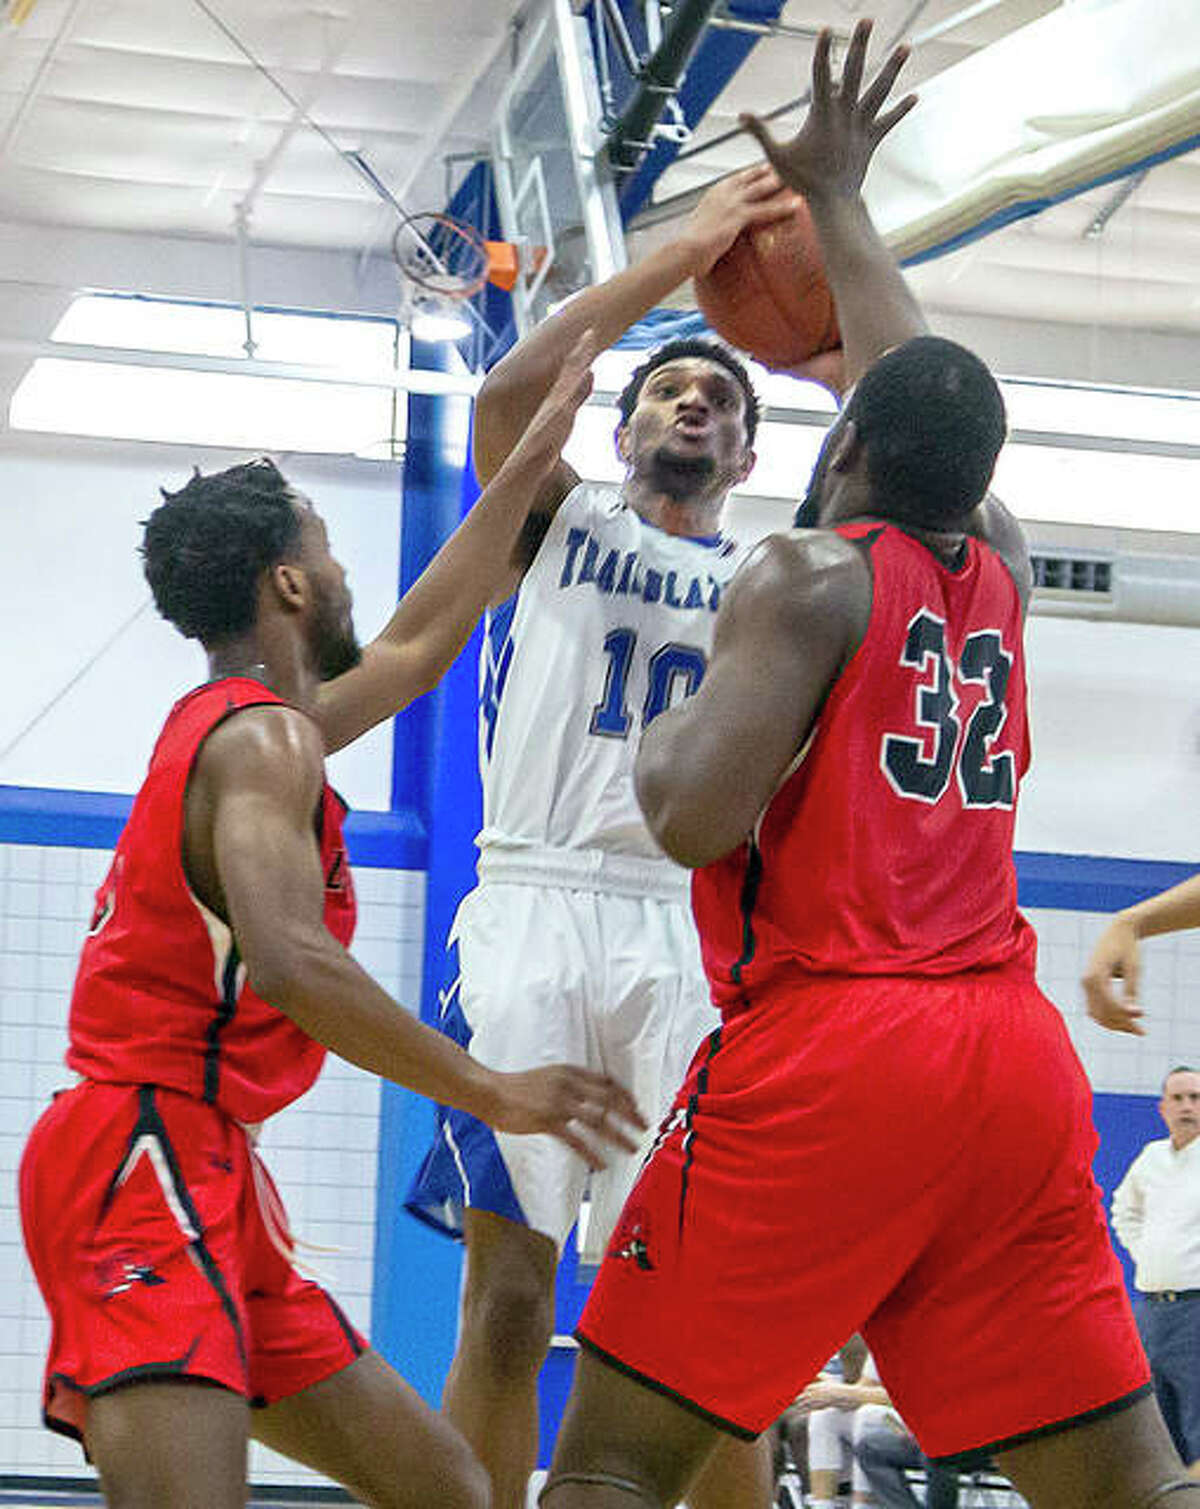 Ziven Clark, center, shots while being guarded by Lake Land's Christian Kapongo (32) Saturday.